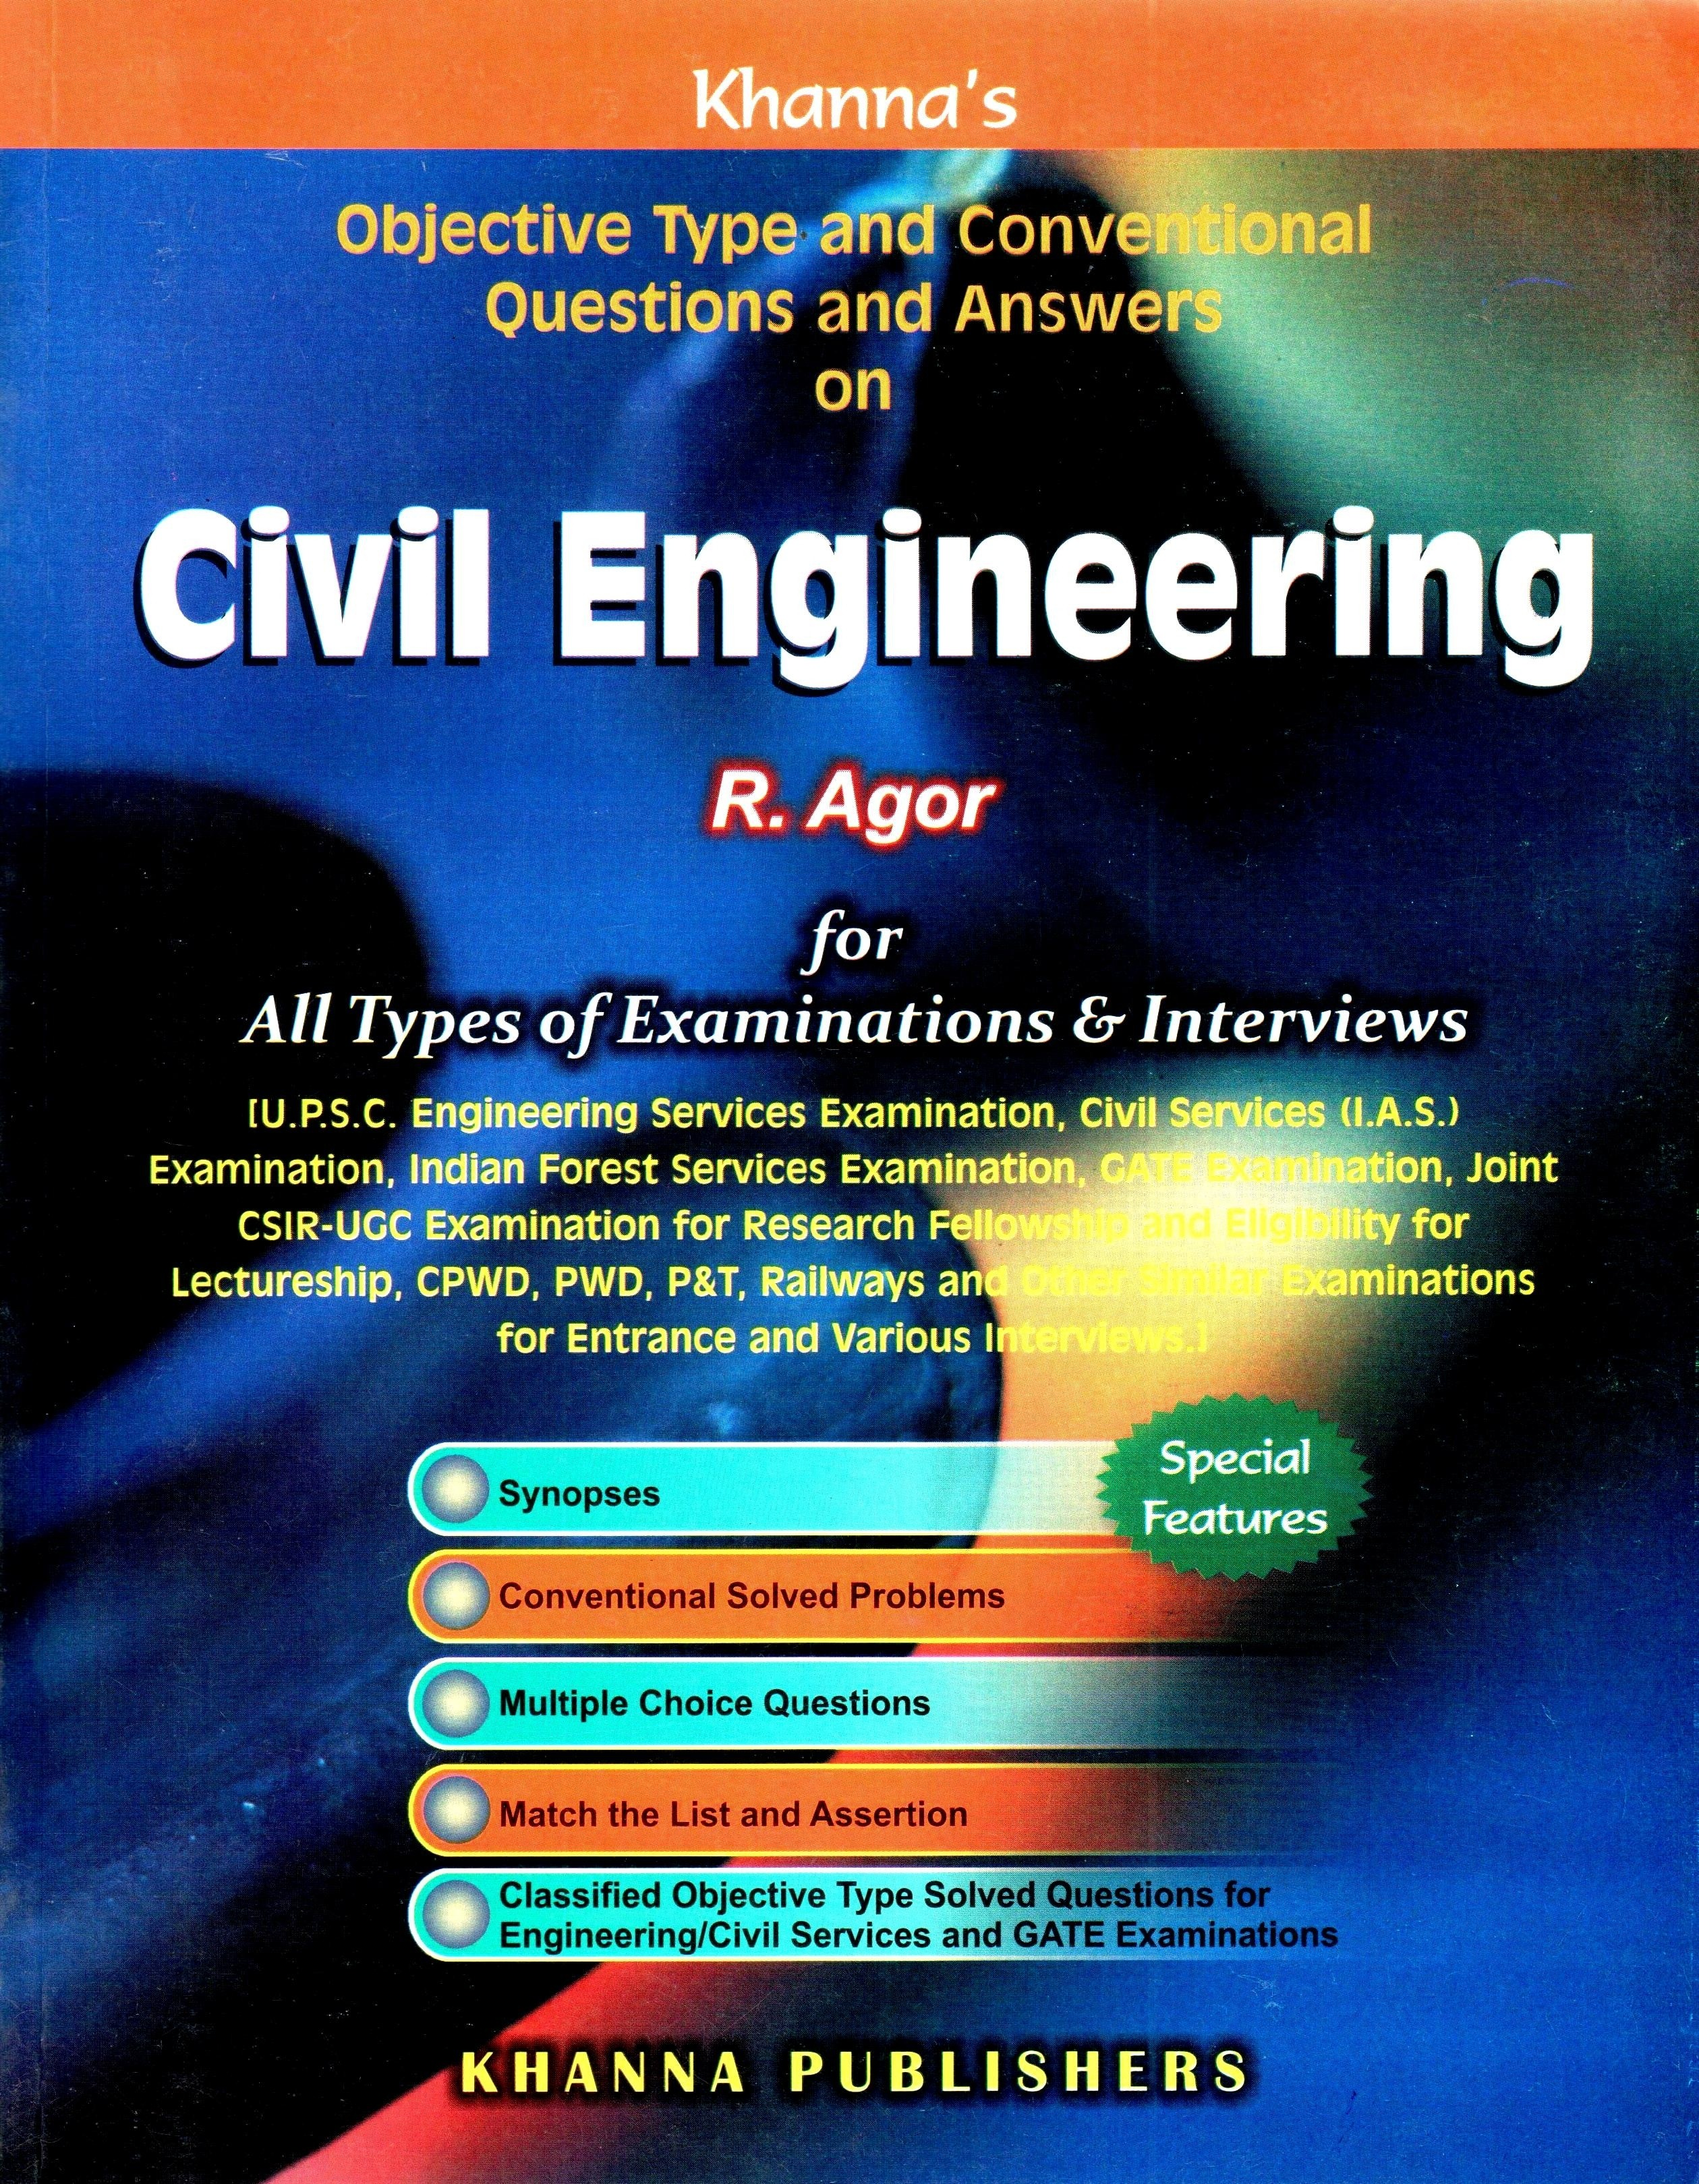 Civil engineering mcqs by r agor : Bajar Libros Gratis Pdf Sin